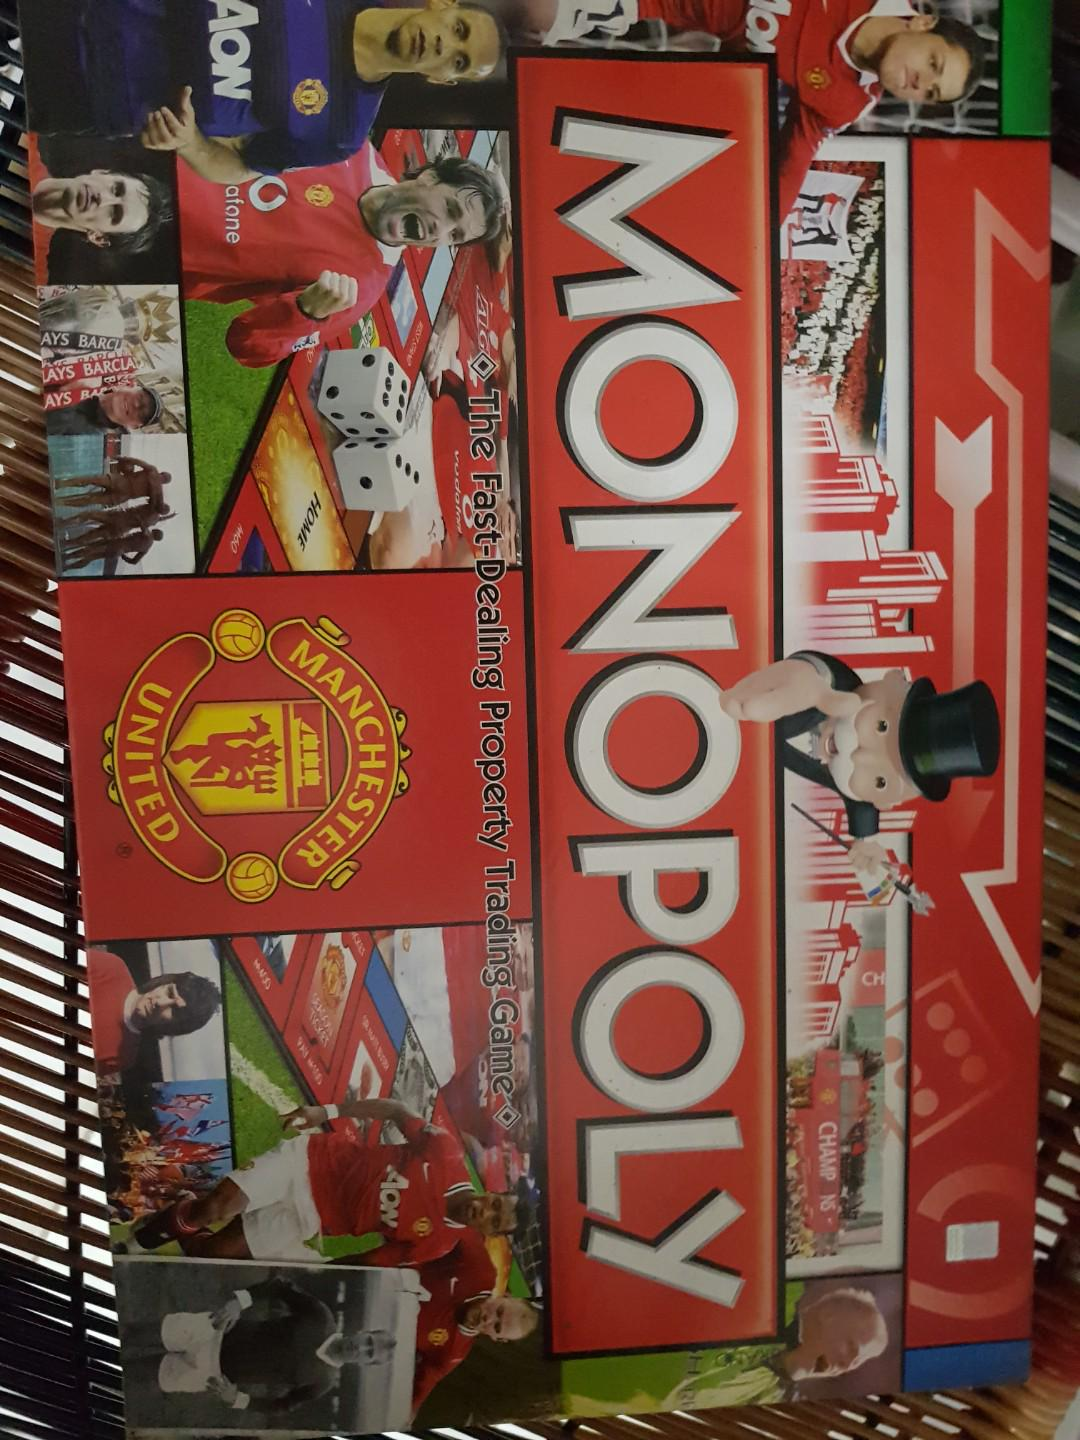 Manchester United board game